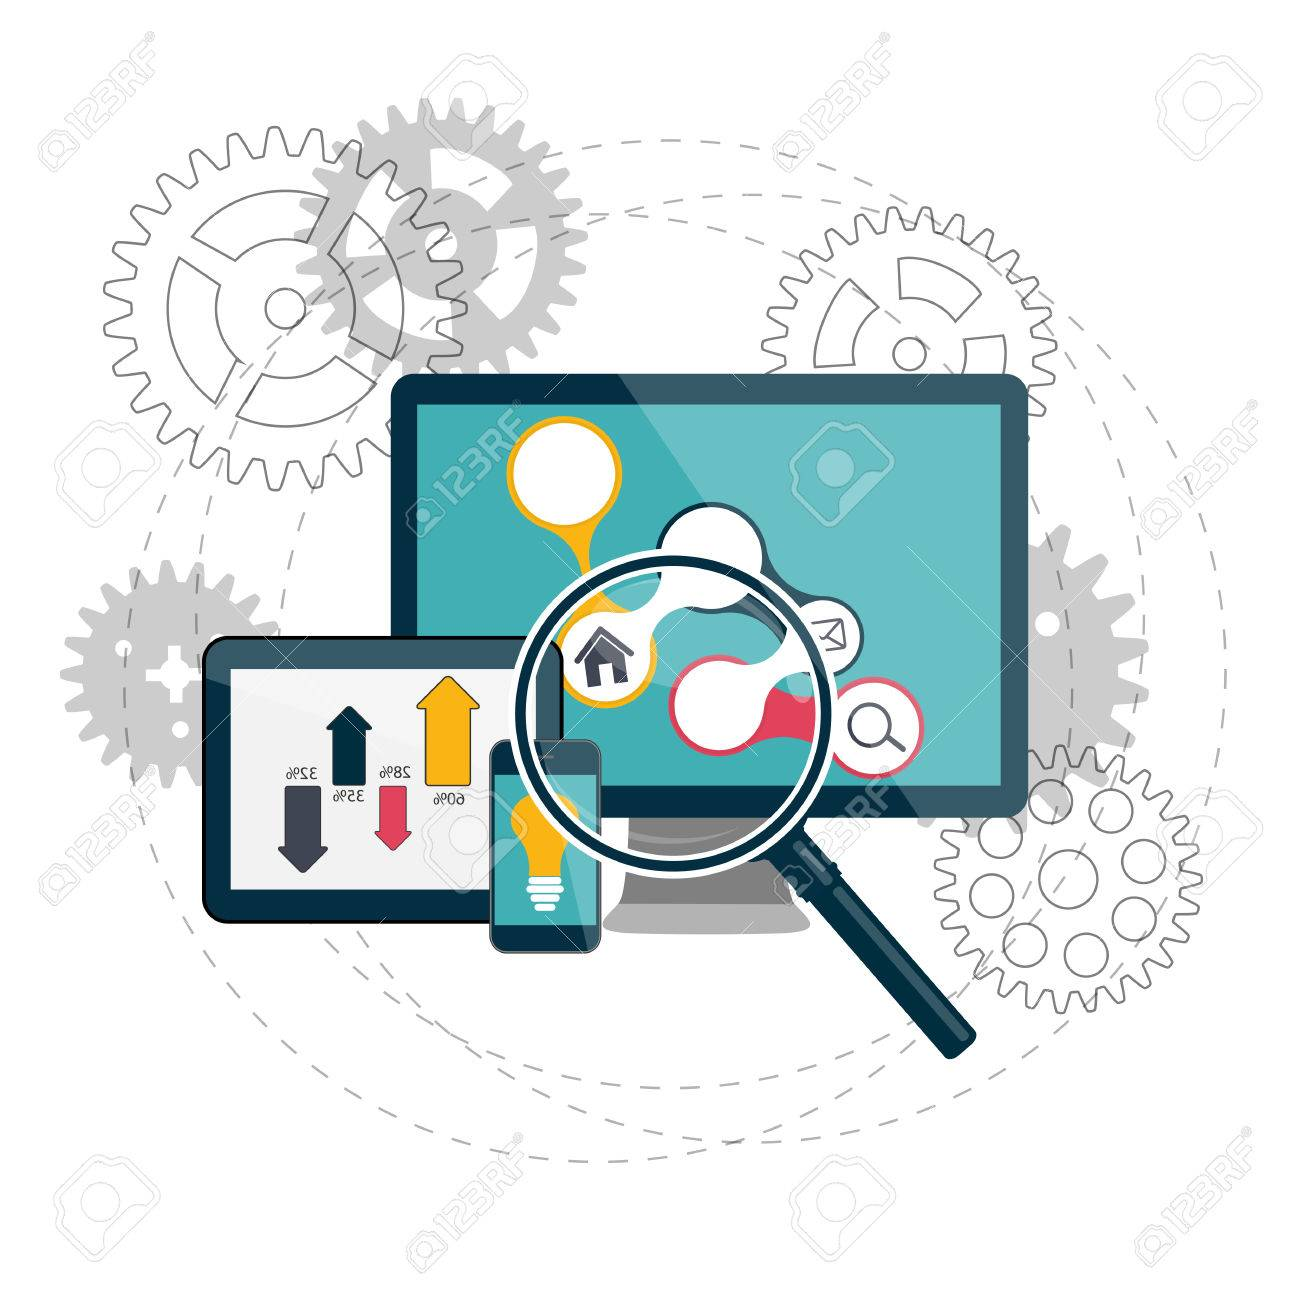 Search Engines Optimization Concept Vector Illustration - 34195321